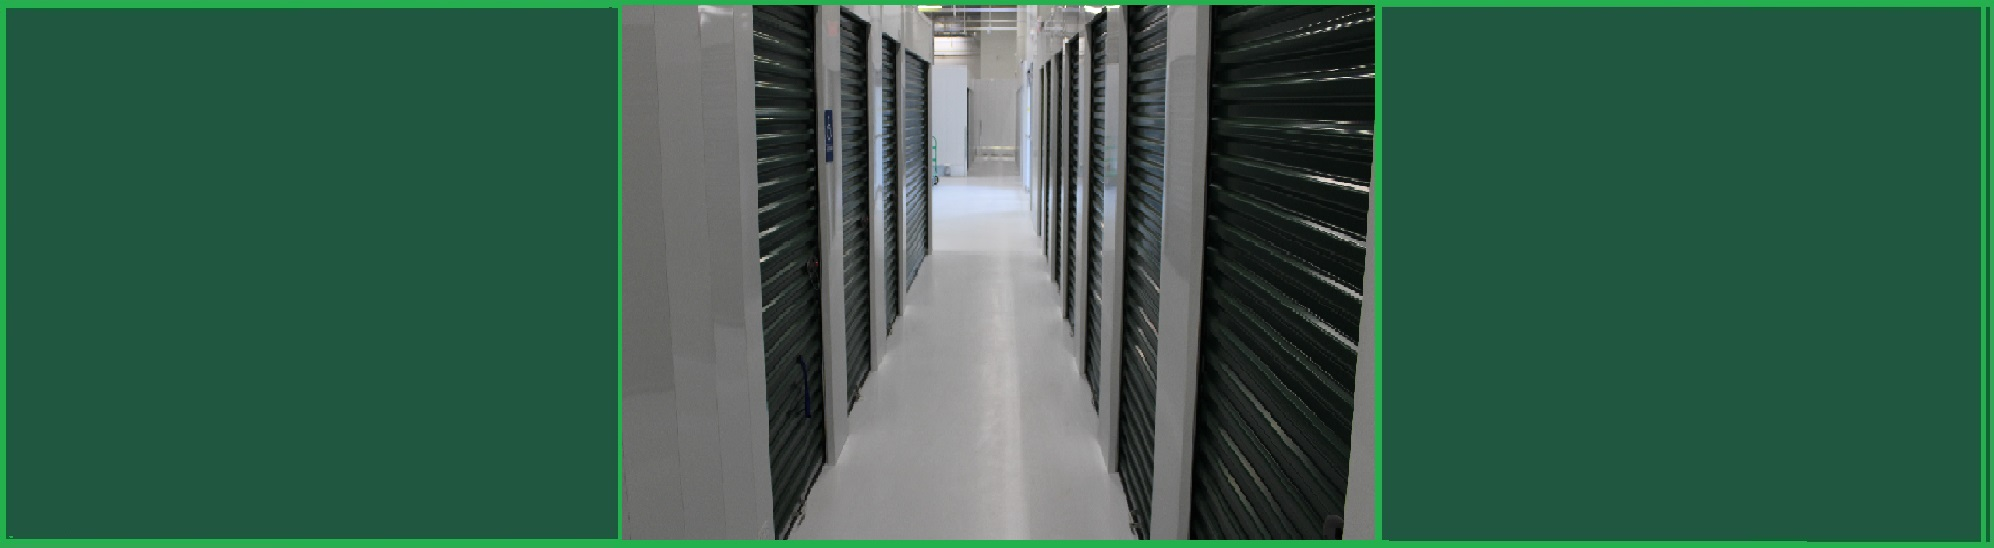 Moving Self storage climate control space downsizing